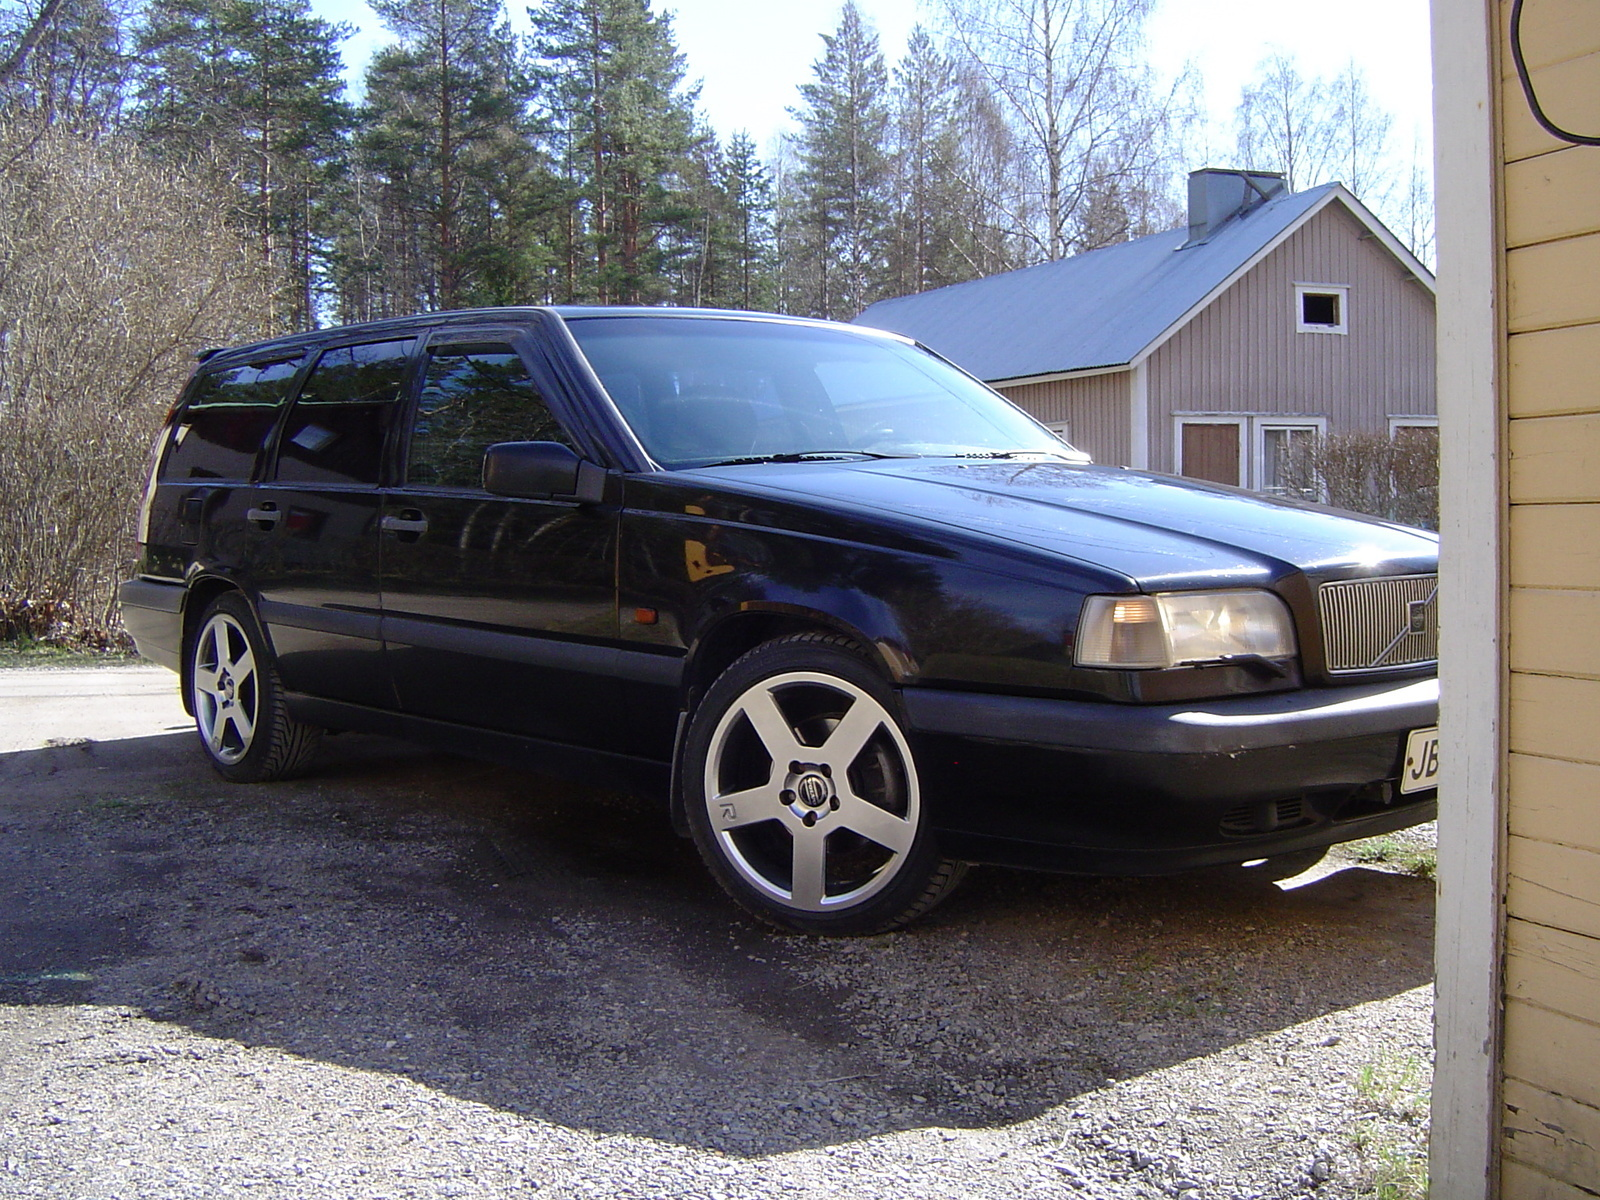 Picture of 1997 volvo 850 exterior gallery_worthy